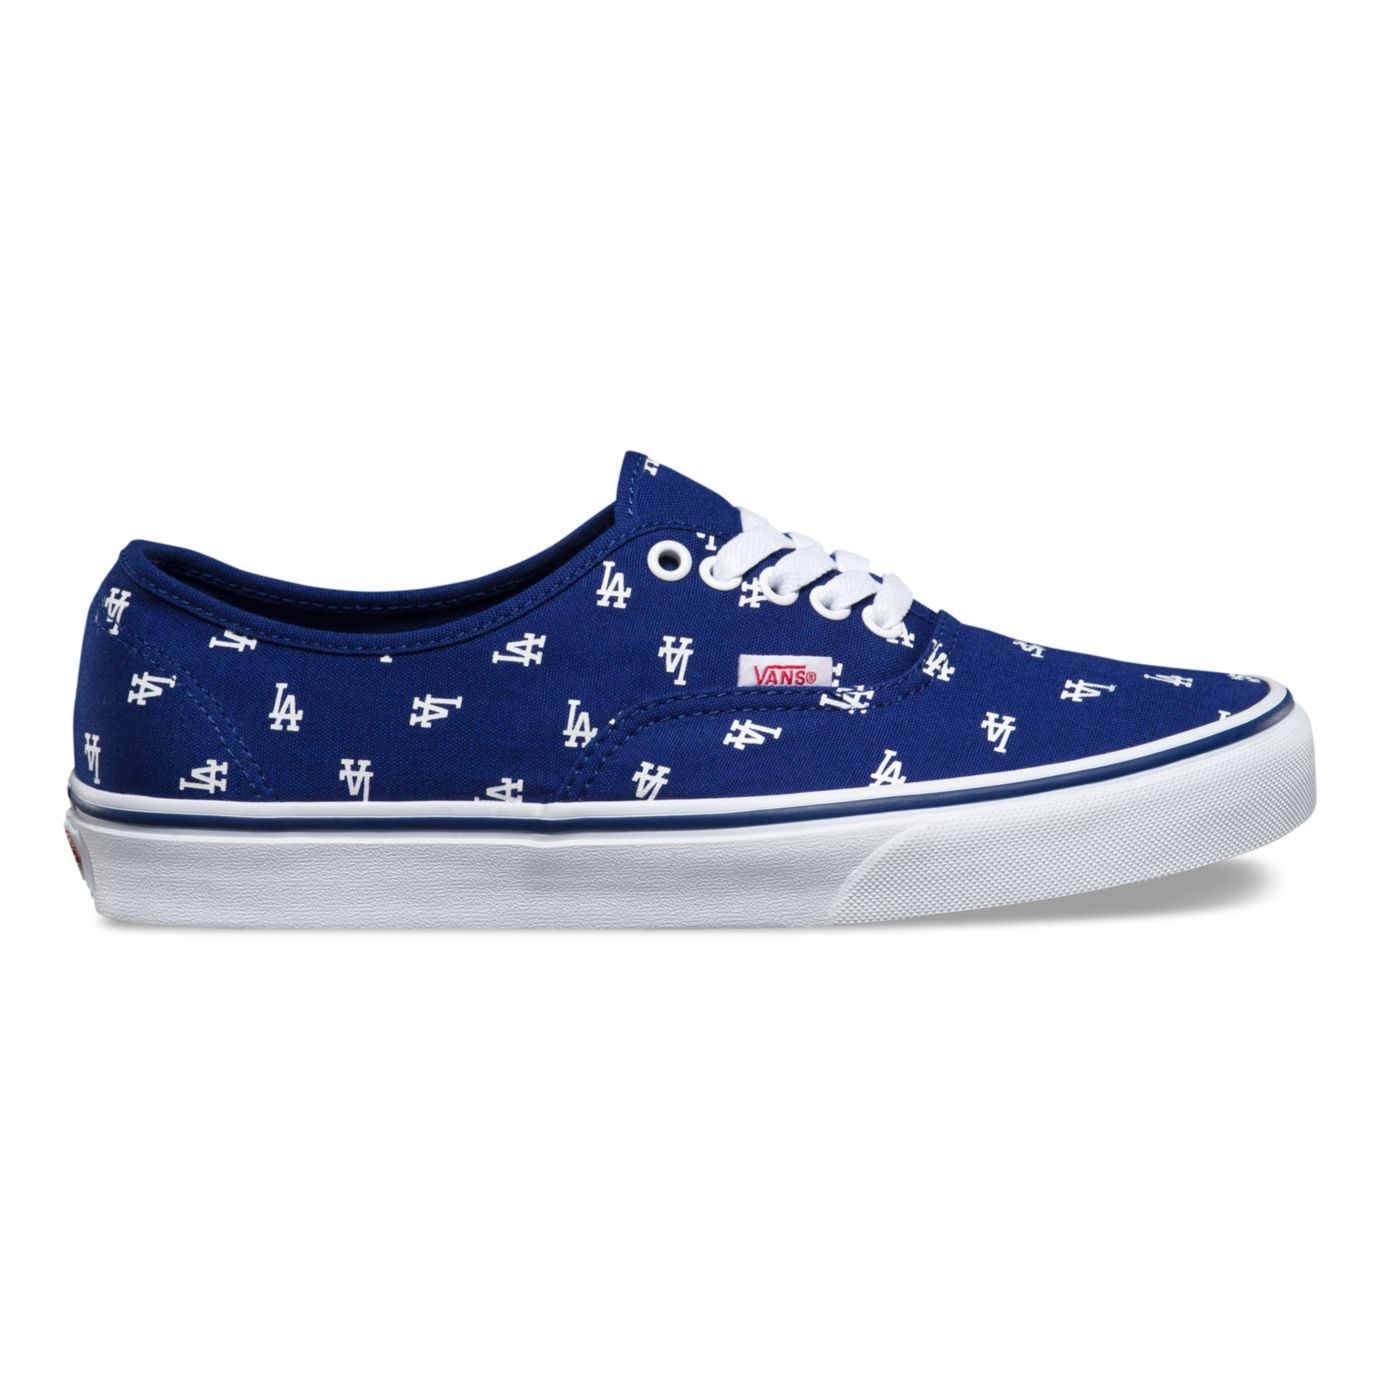 58d76c6b105 Vans x Major League Baseball